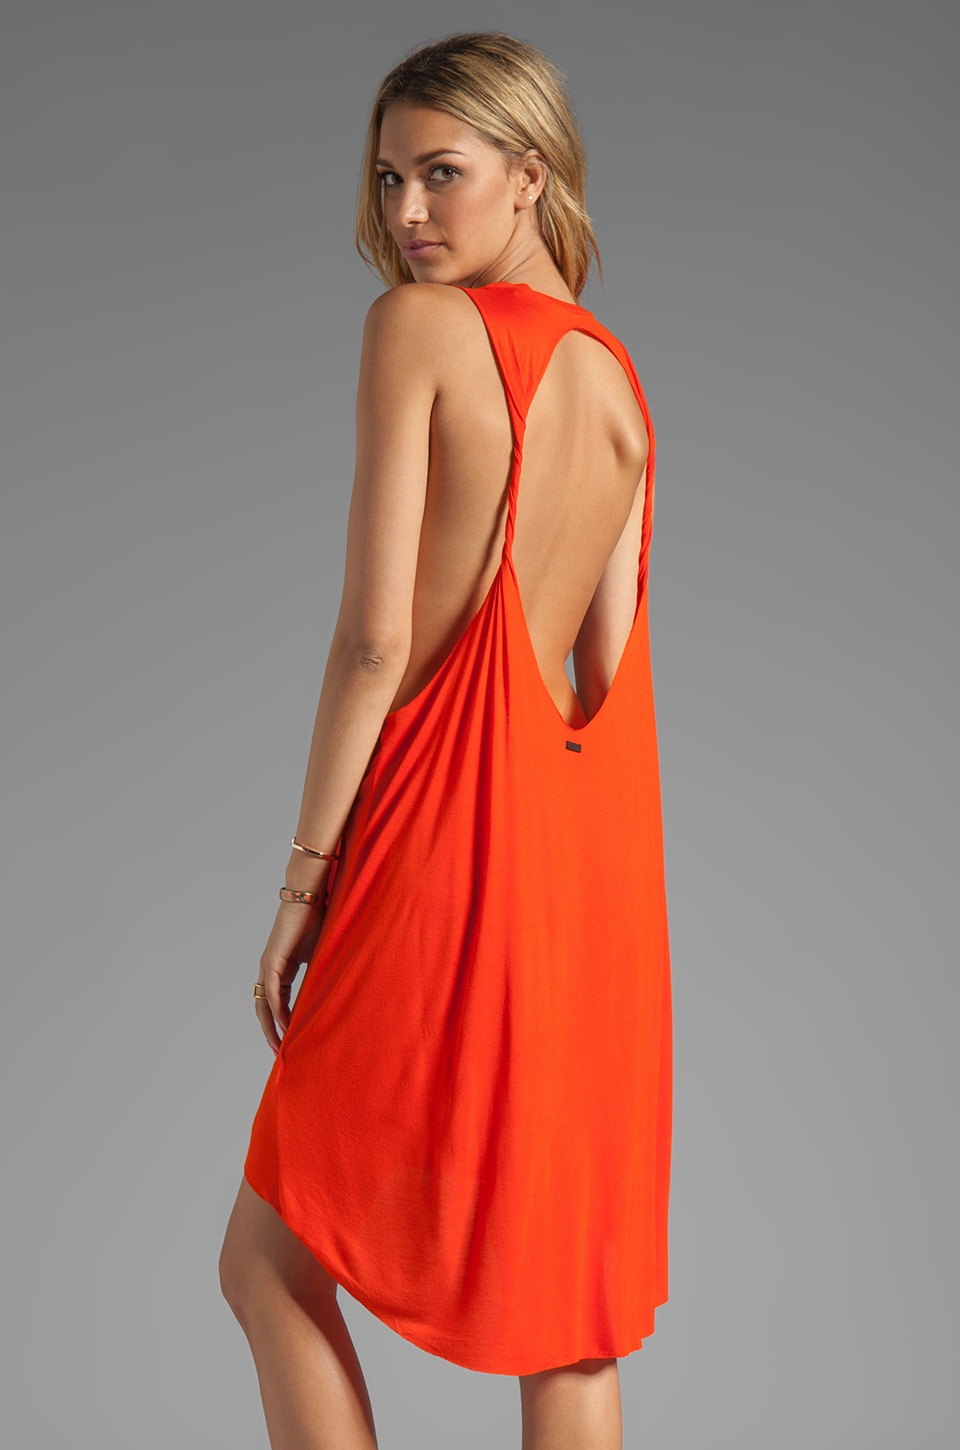 Obey Outlaw Dress in Spicy Orange